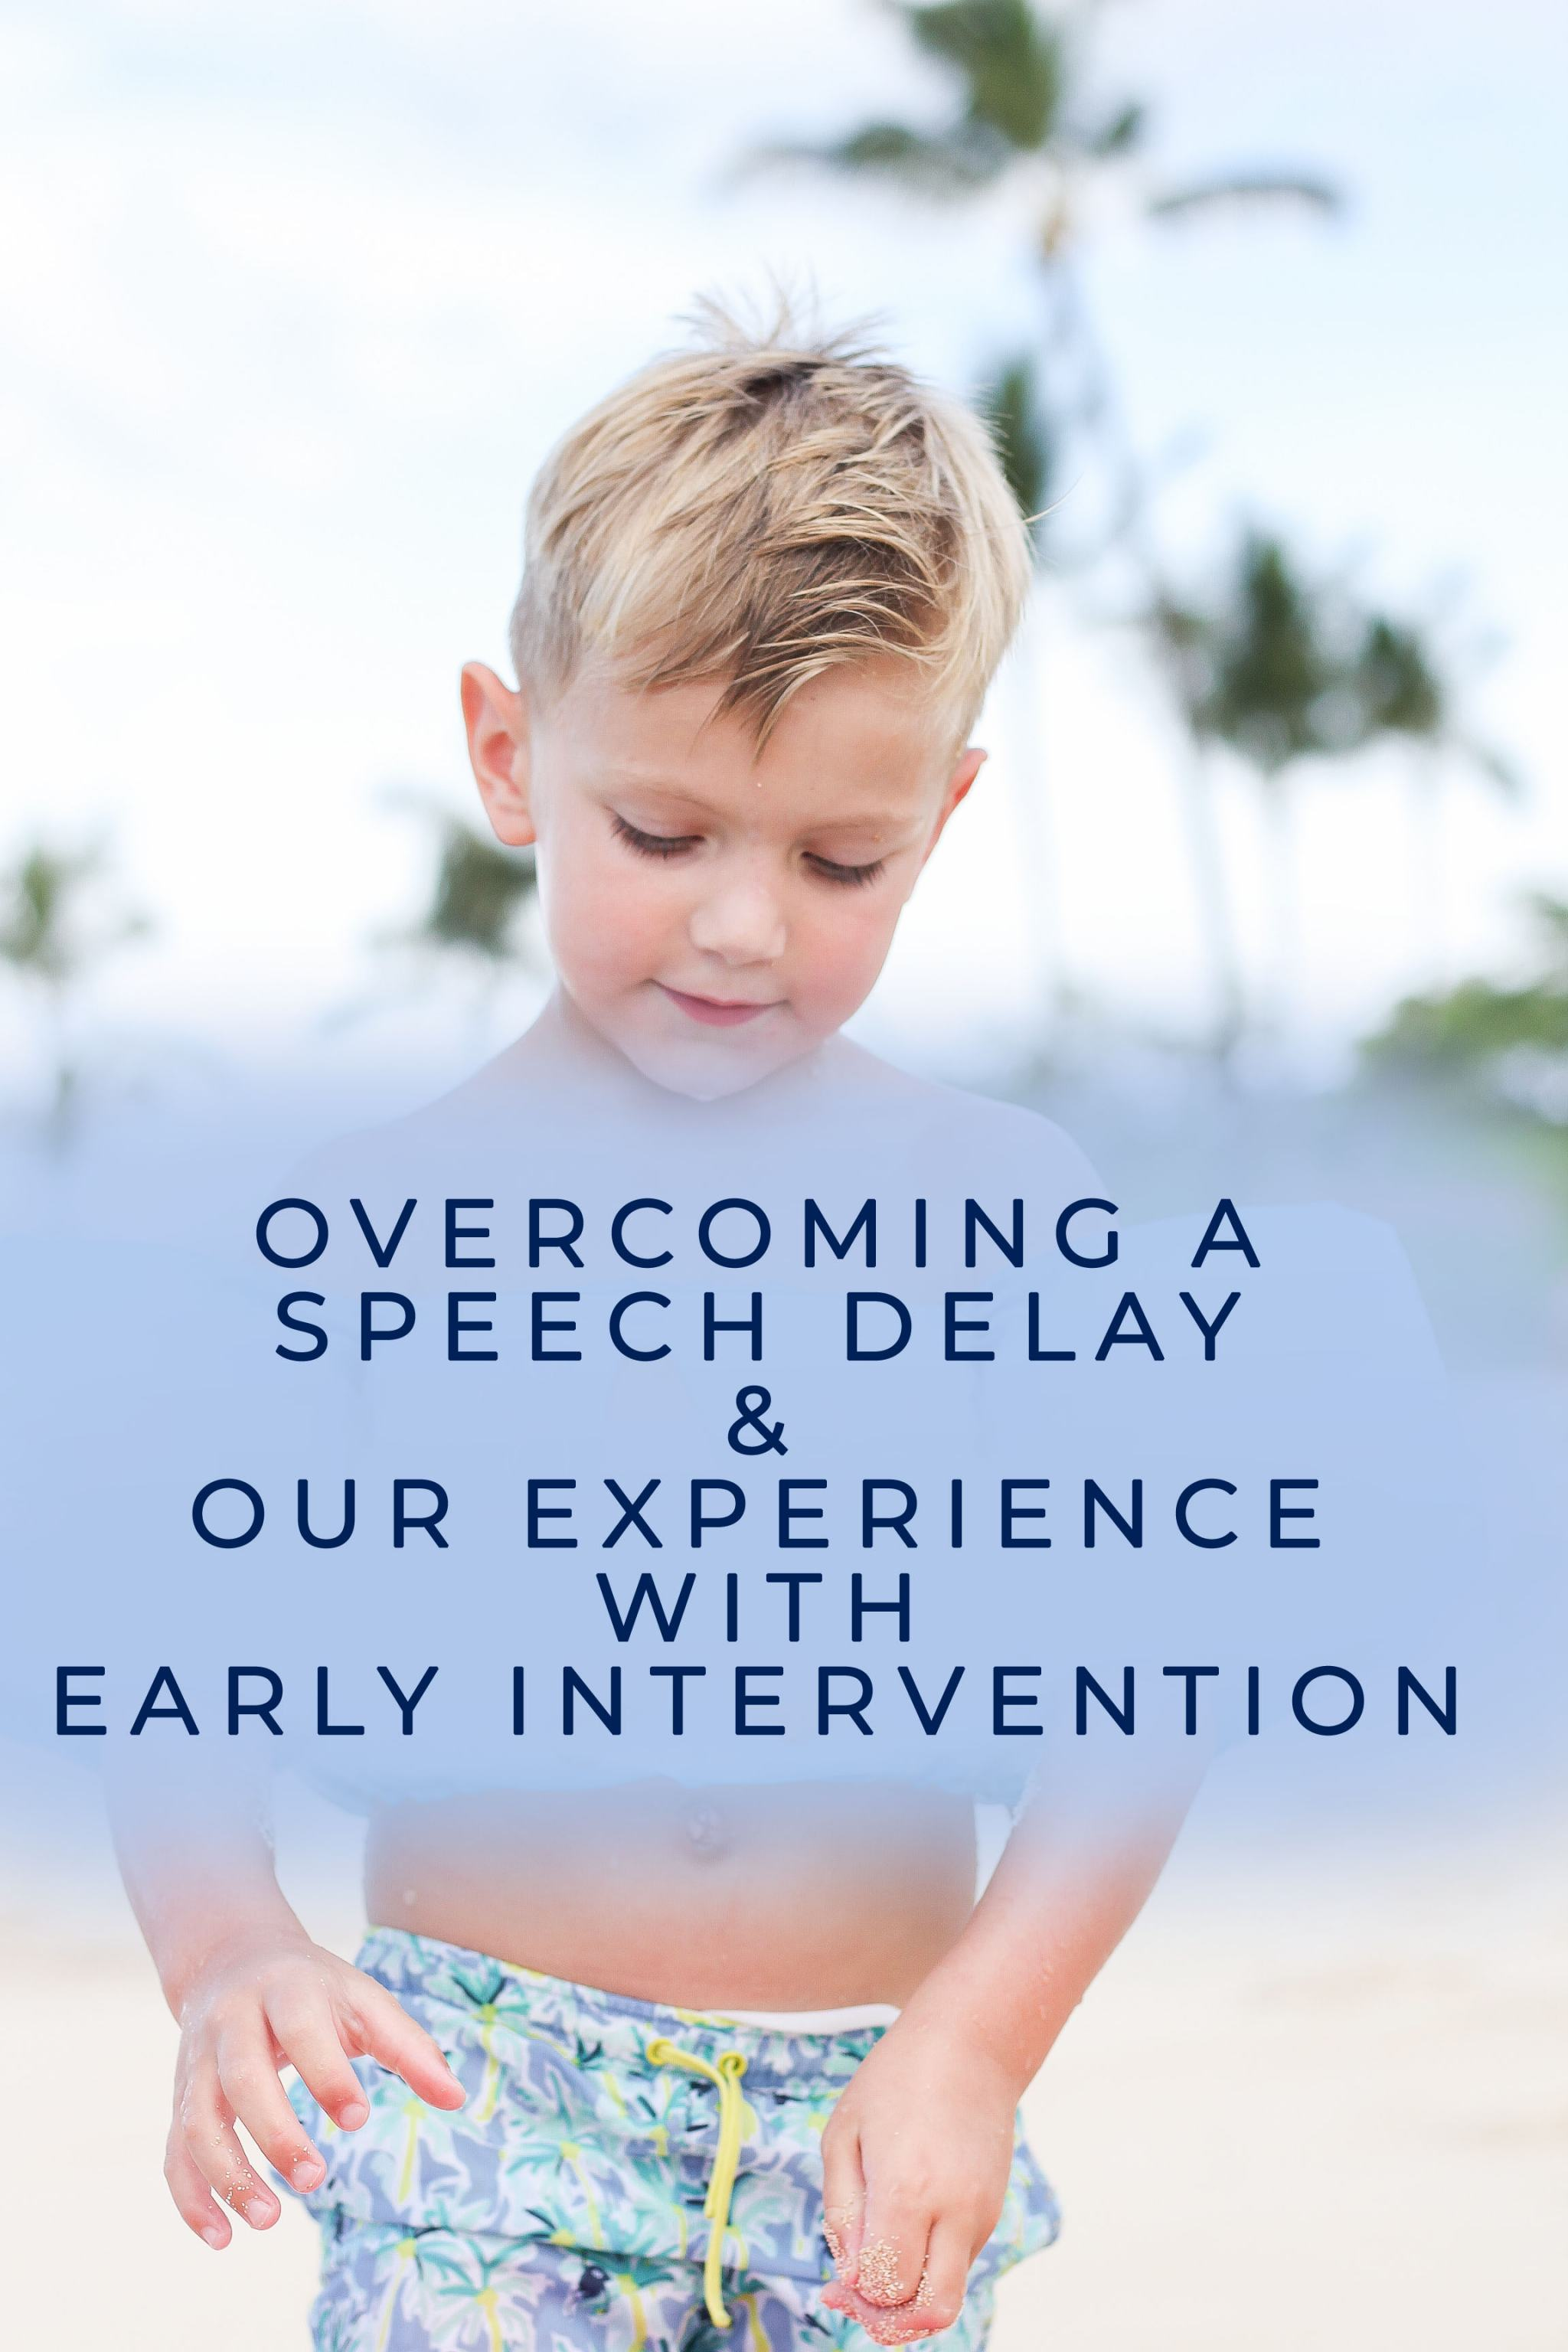 what does a speech delay look like - speech delay - overcoming a speech delay - my child isn't talking - early intervention - speech therapy - my child isn't talking - does my child have a speech delay - early intervention